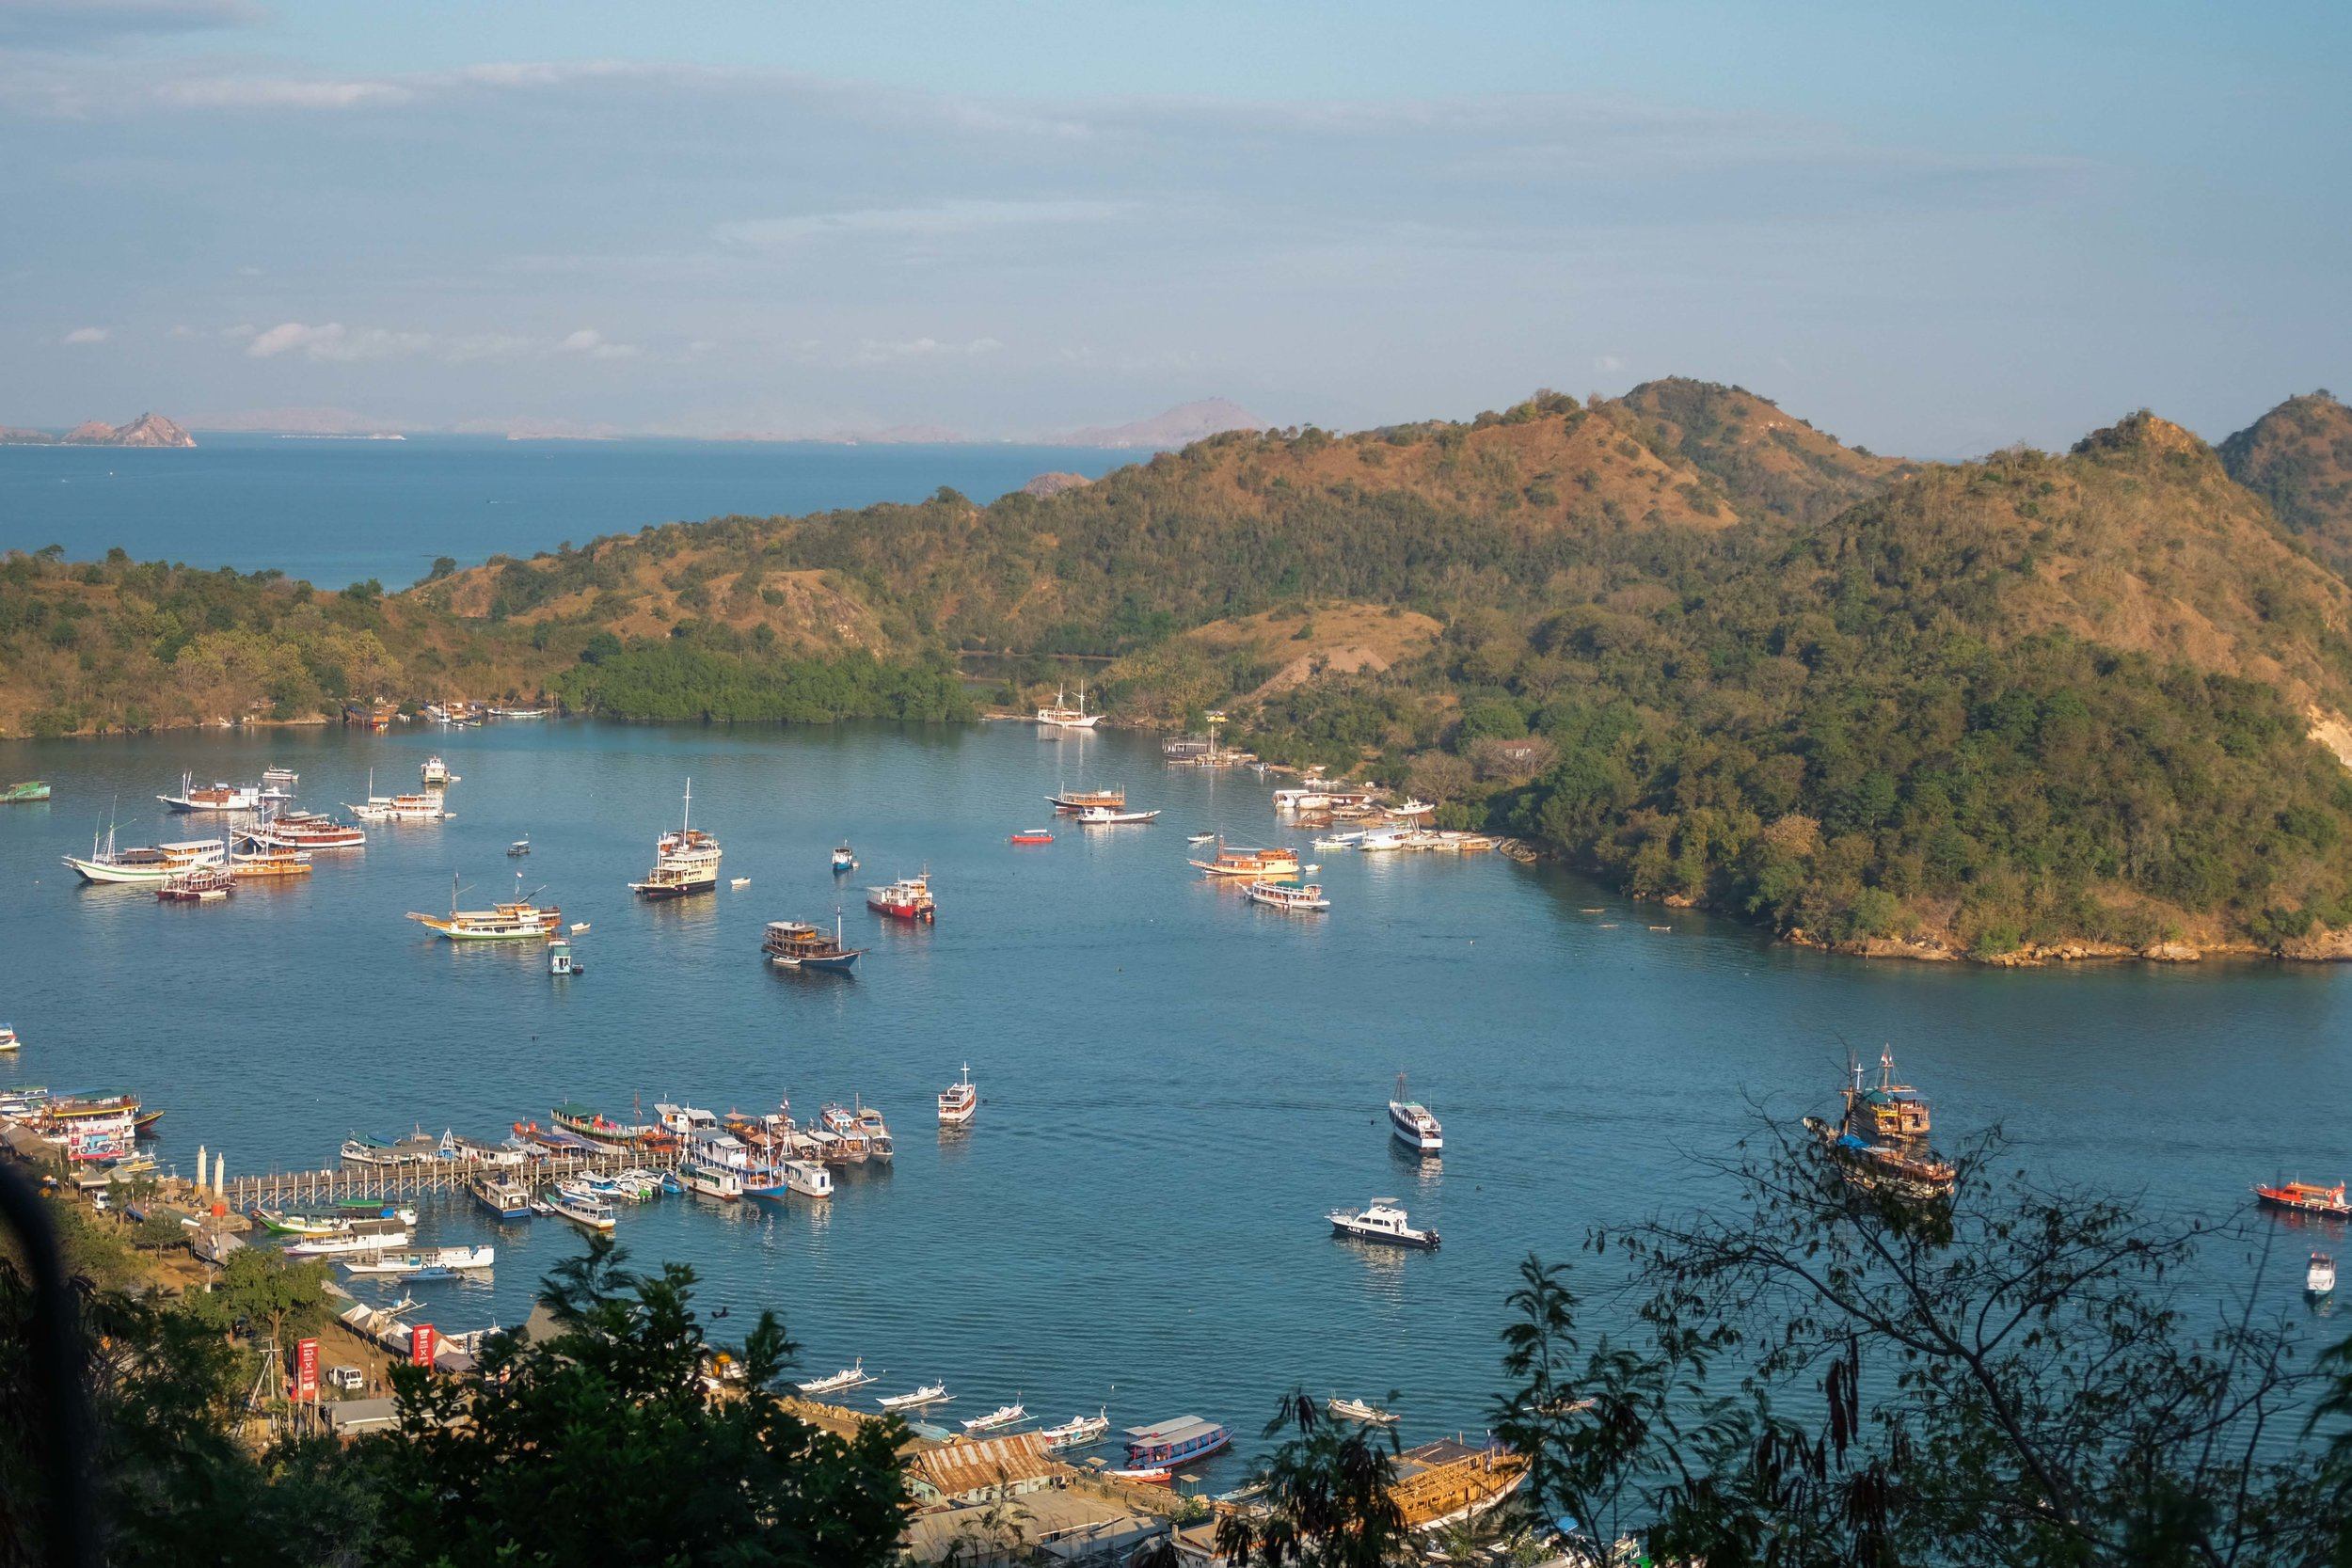 The port of Labuan Bajo in early morning light